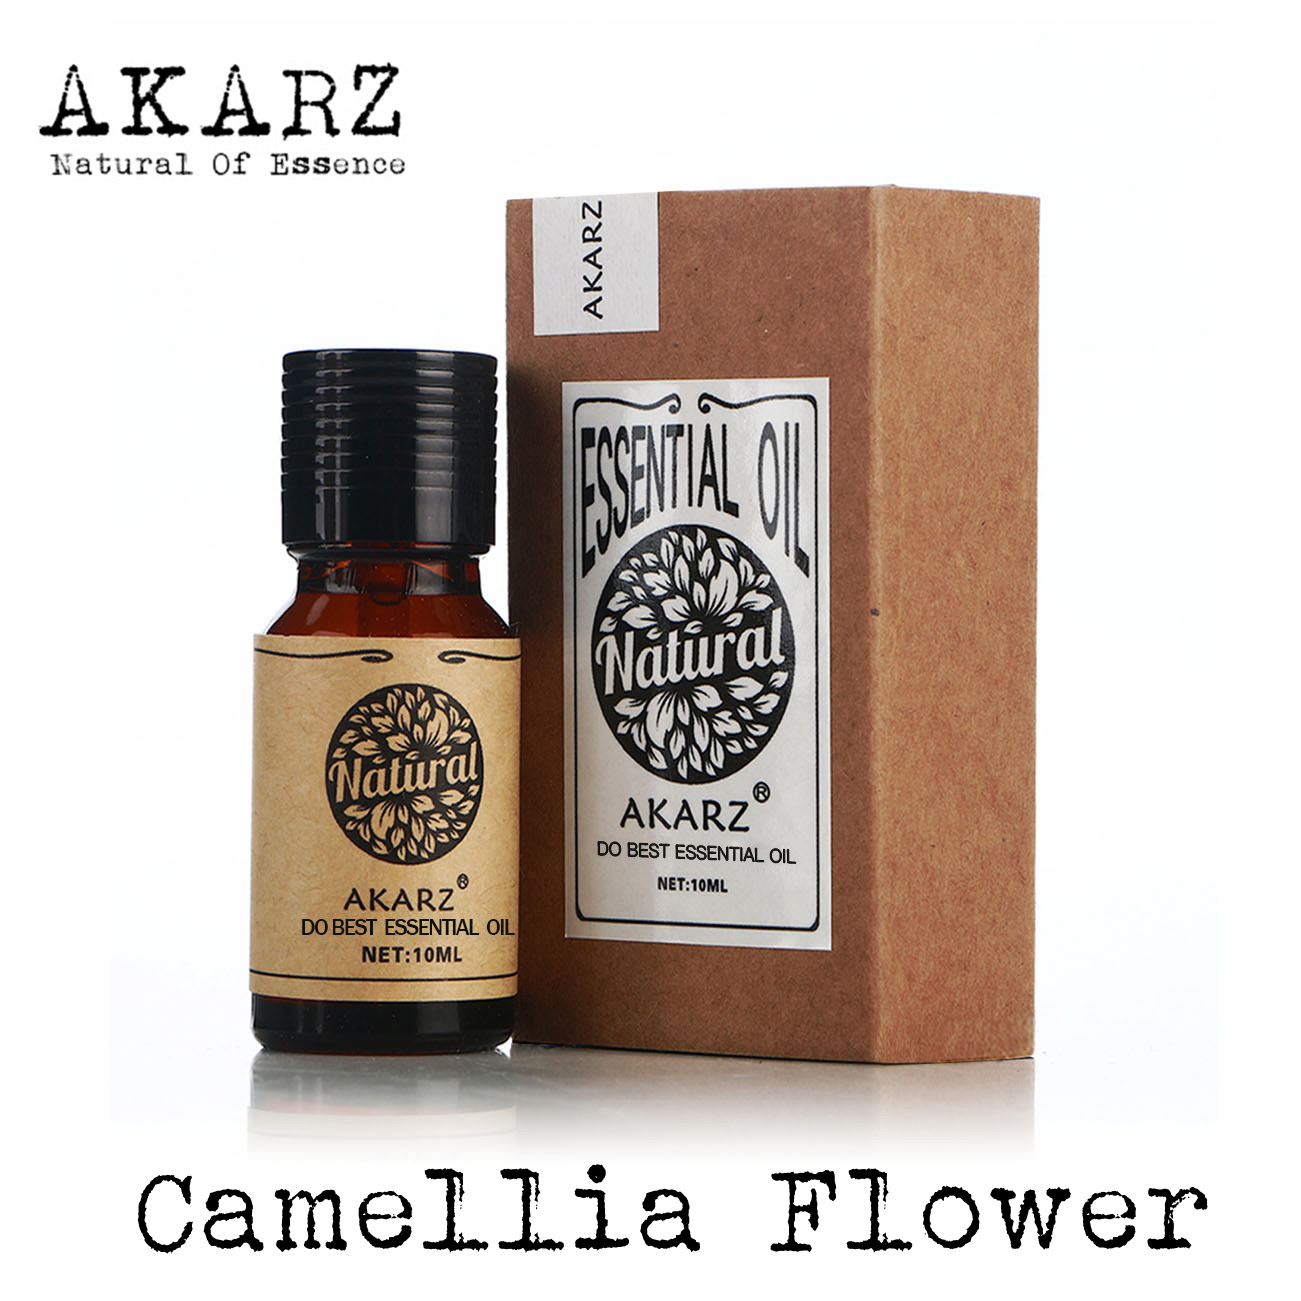 Camellia flower essential oil AKARZ Top Brand body face skin care spa message fragrance lamp Aromatherapy camellia flower oil